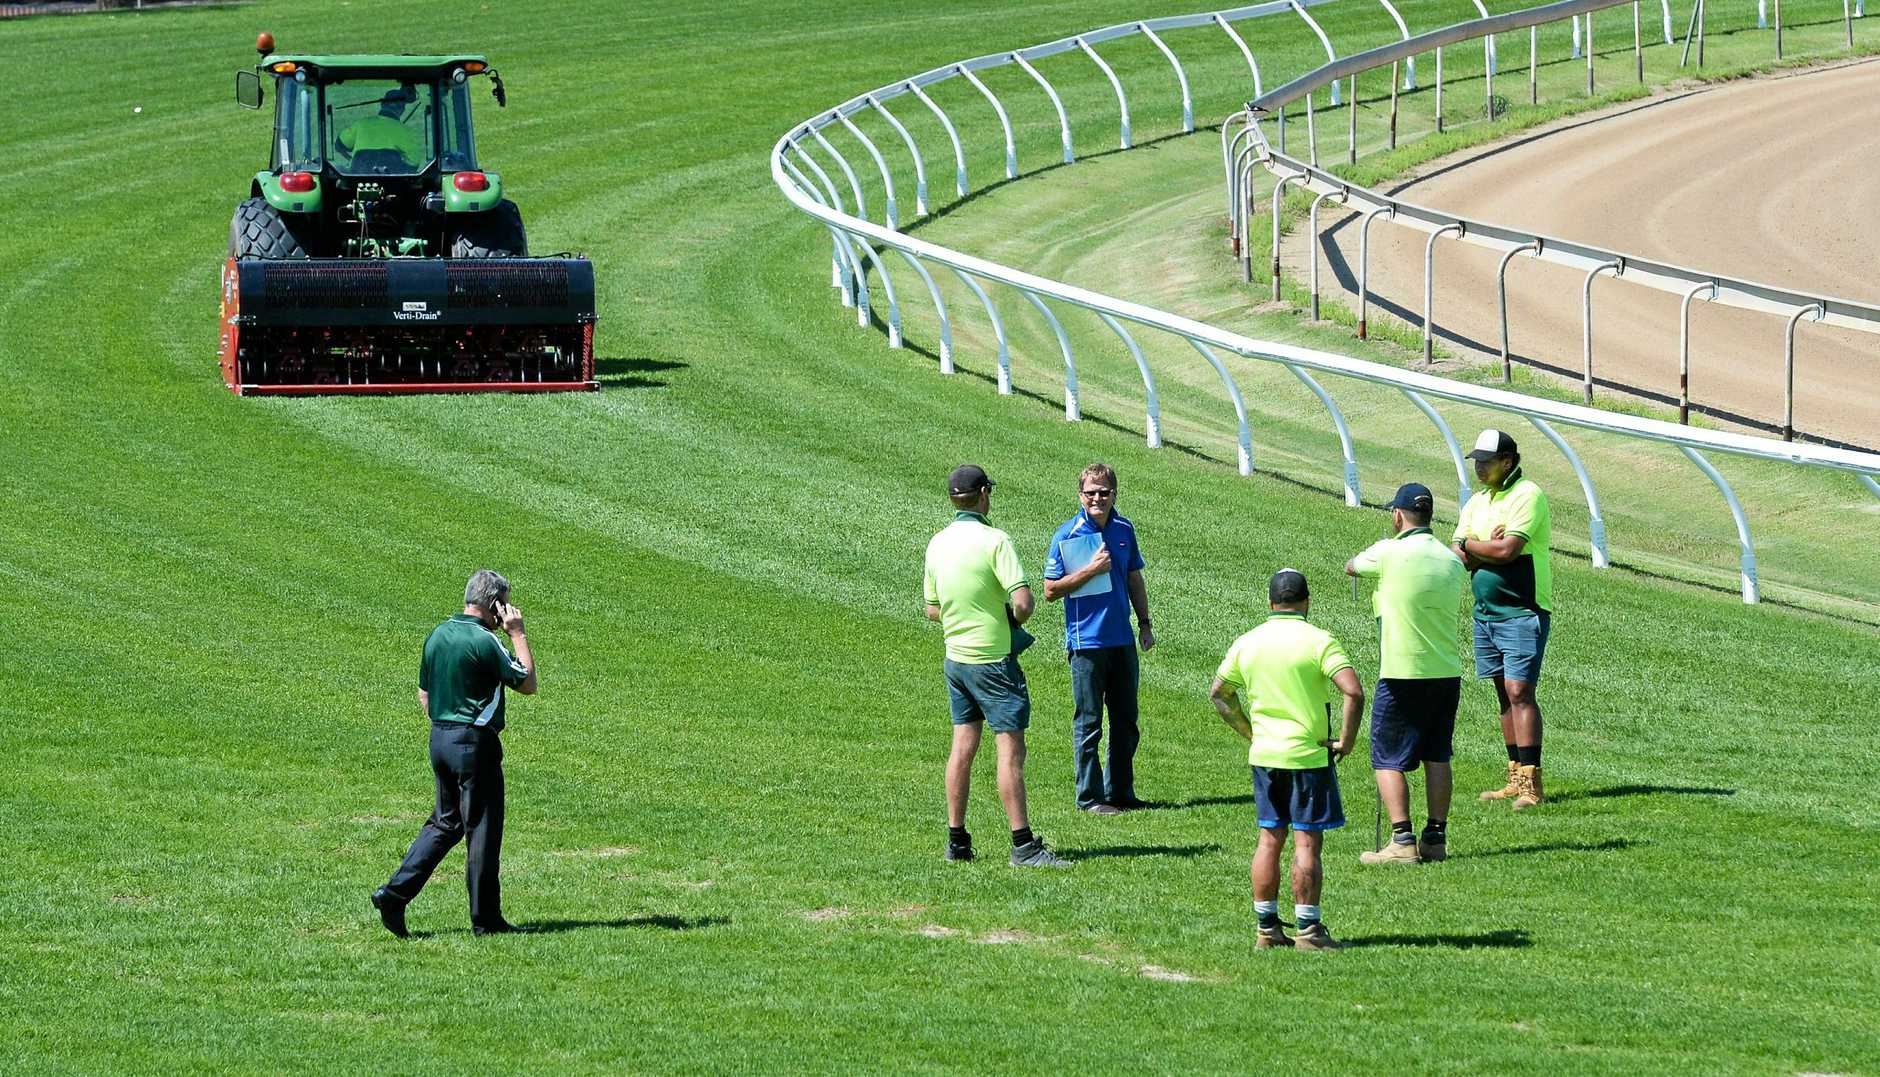 Officials on the track at the Ipswich Racetrack on October 10 after racing was abandoned.